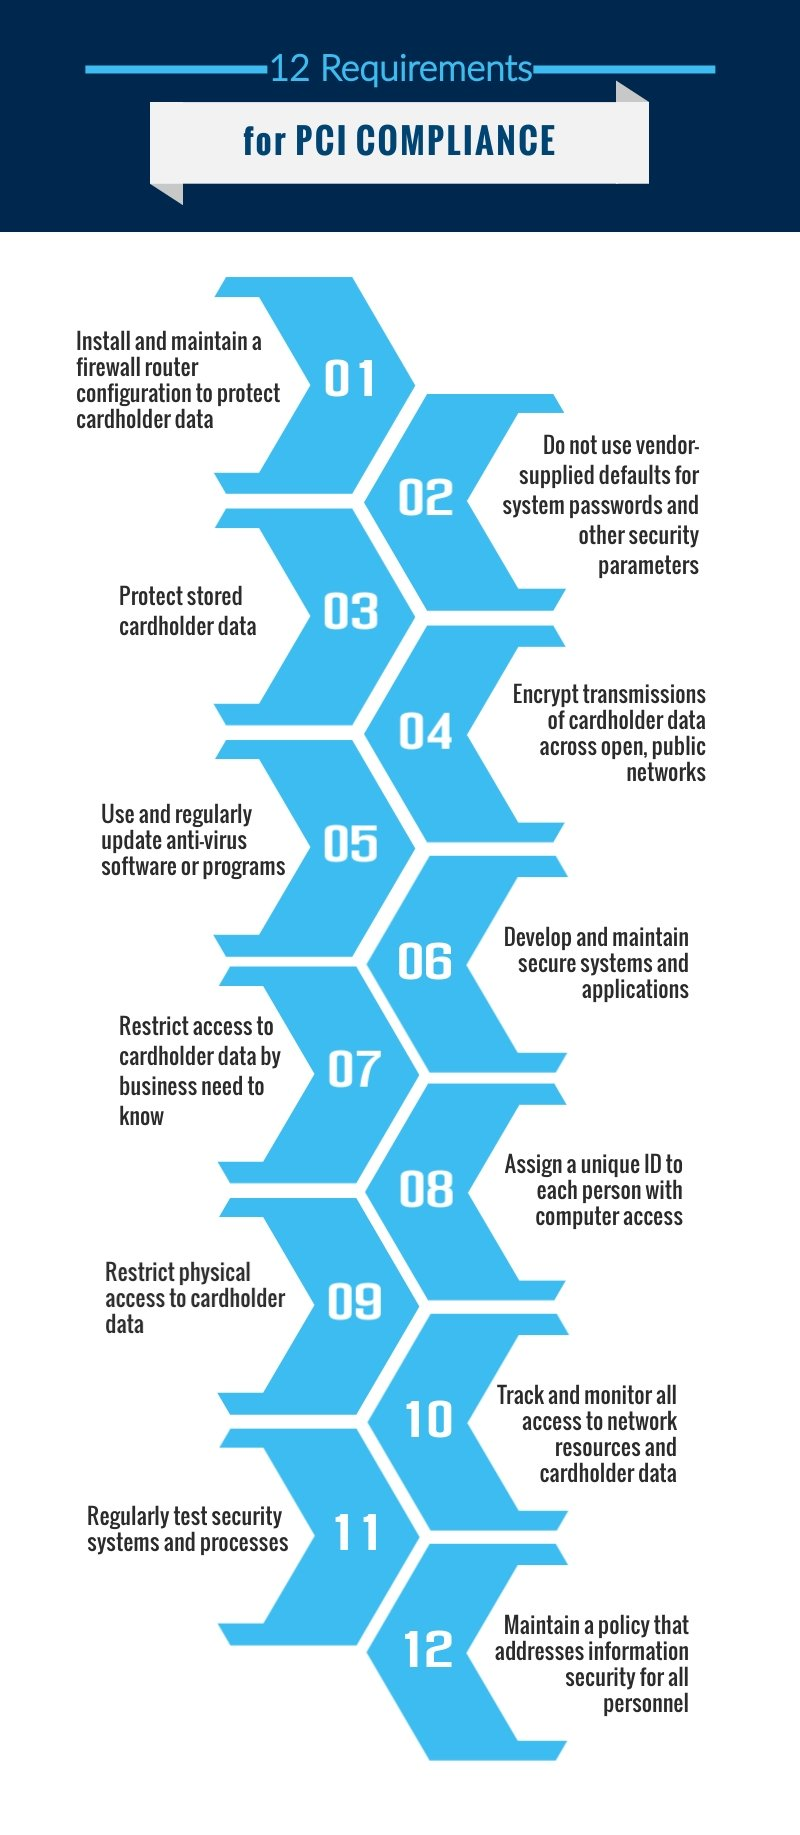 12 requirements for PCI compliance